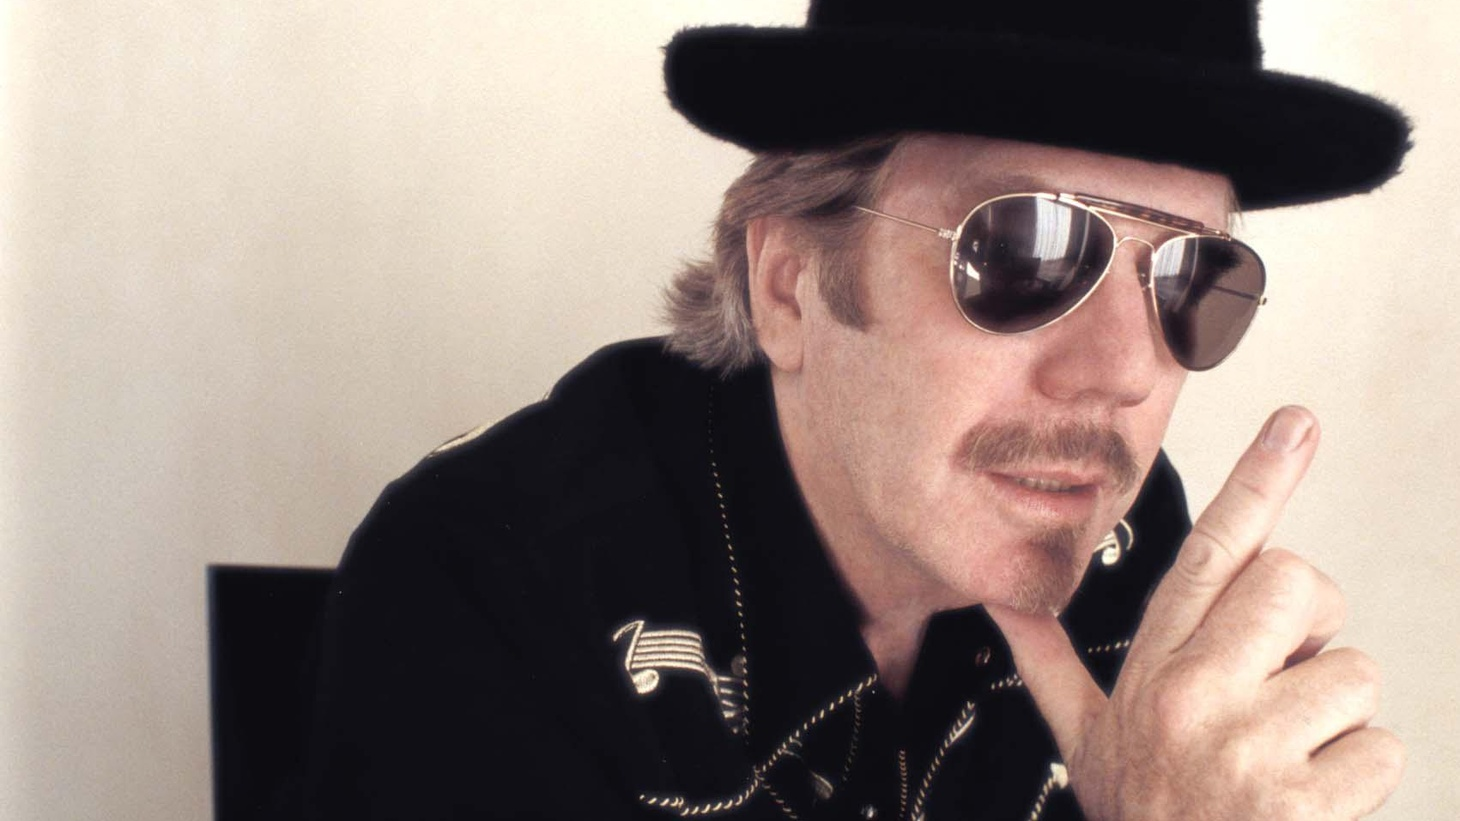 Since forming his acoustic group in 1968, Dan Hicks began to create a unique sound that drew from jazz, gypsy music and country-swing...